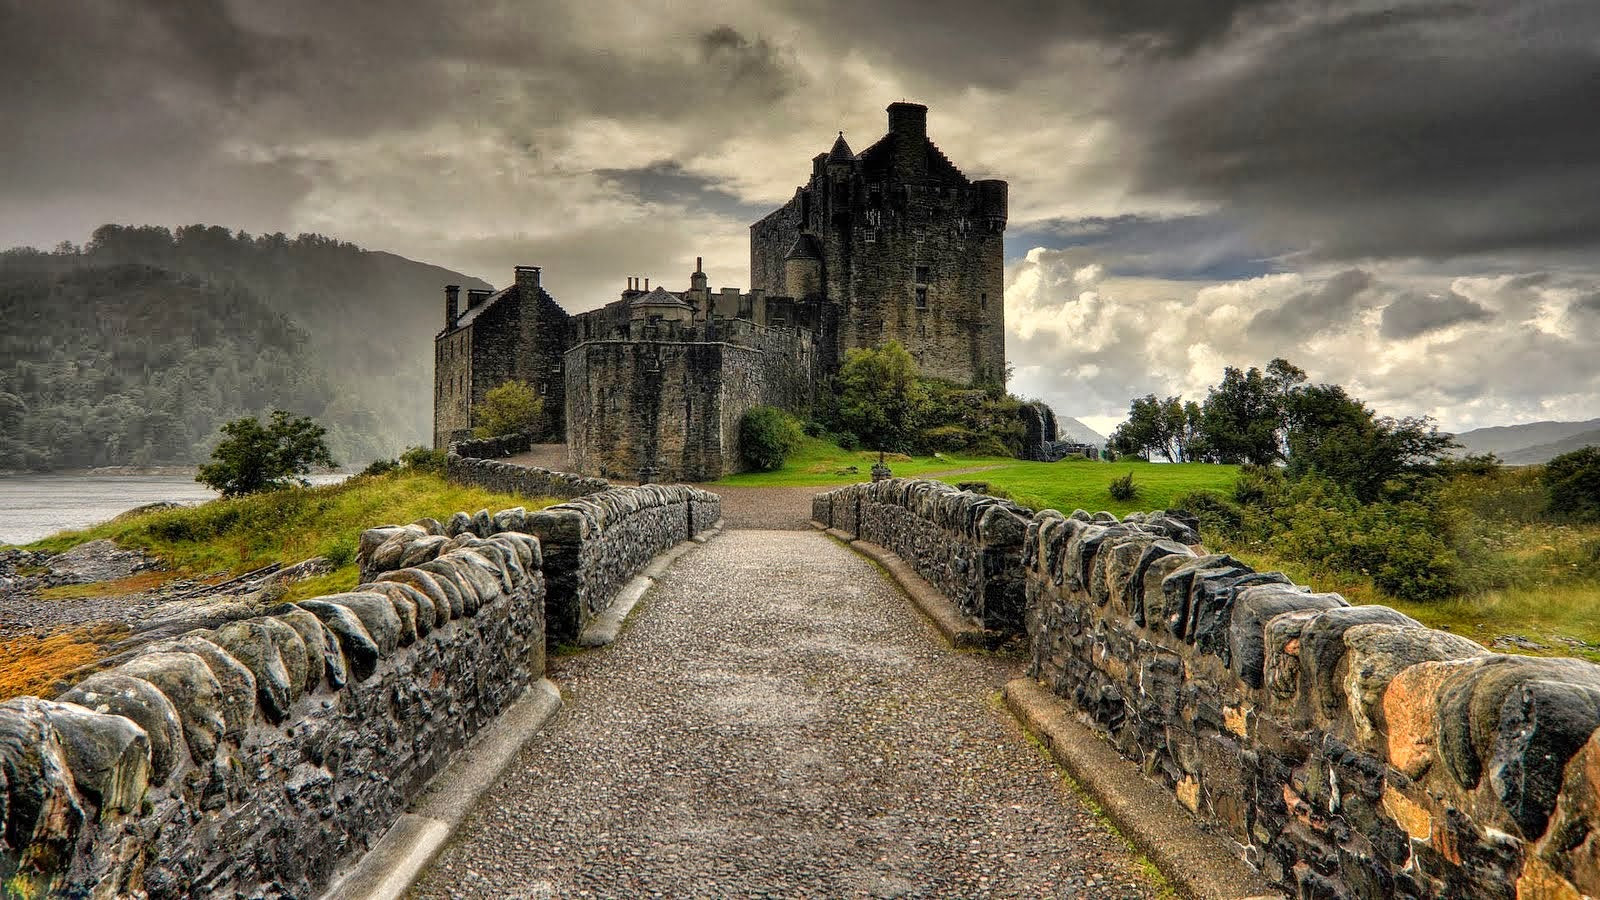 HD WALLPAPERS FREE DOWNLOAD: CASTLE HD Wallpapers Free Download